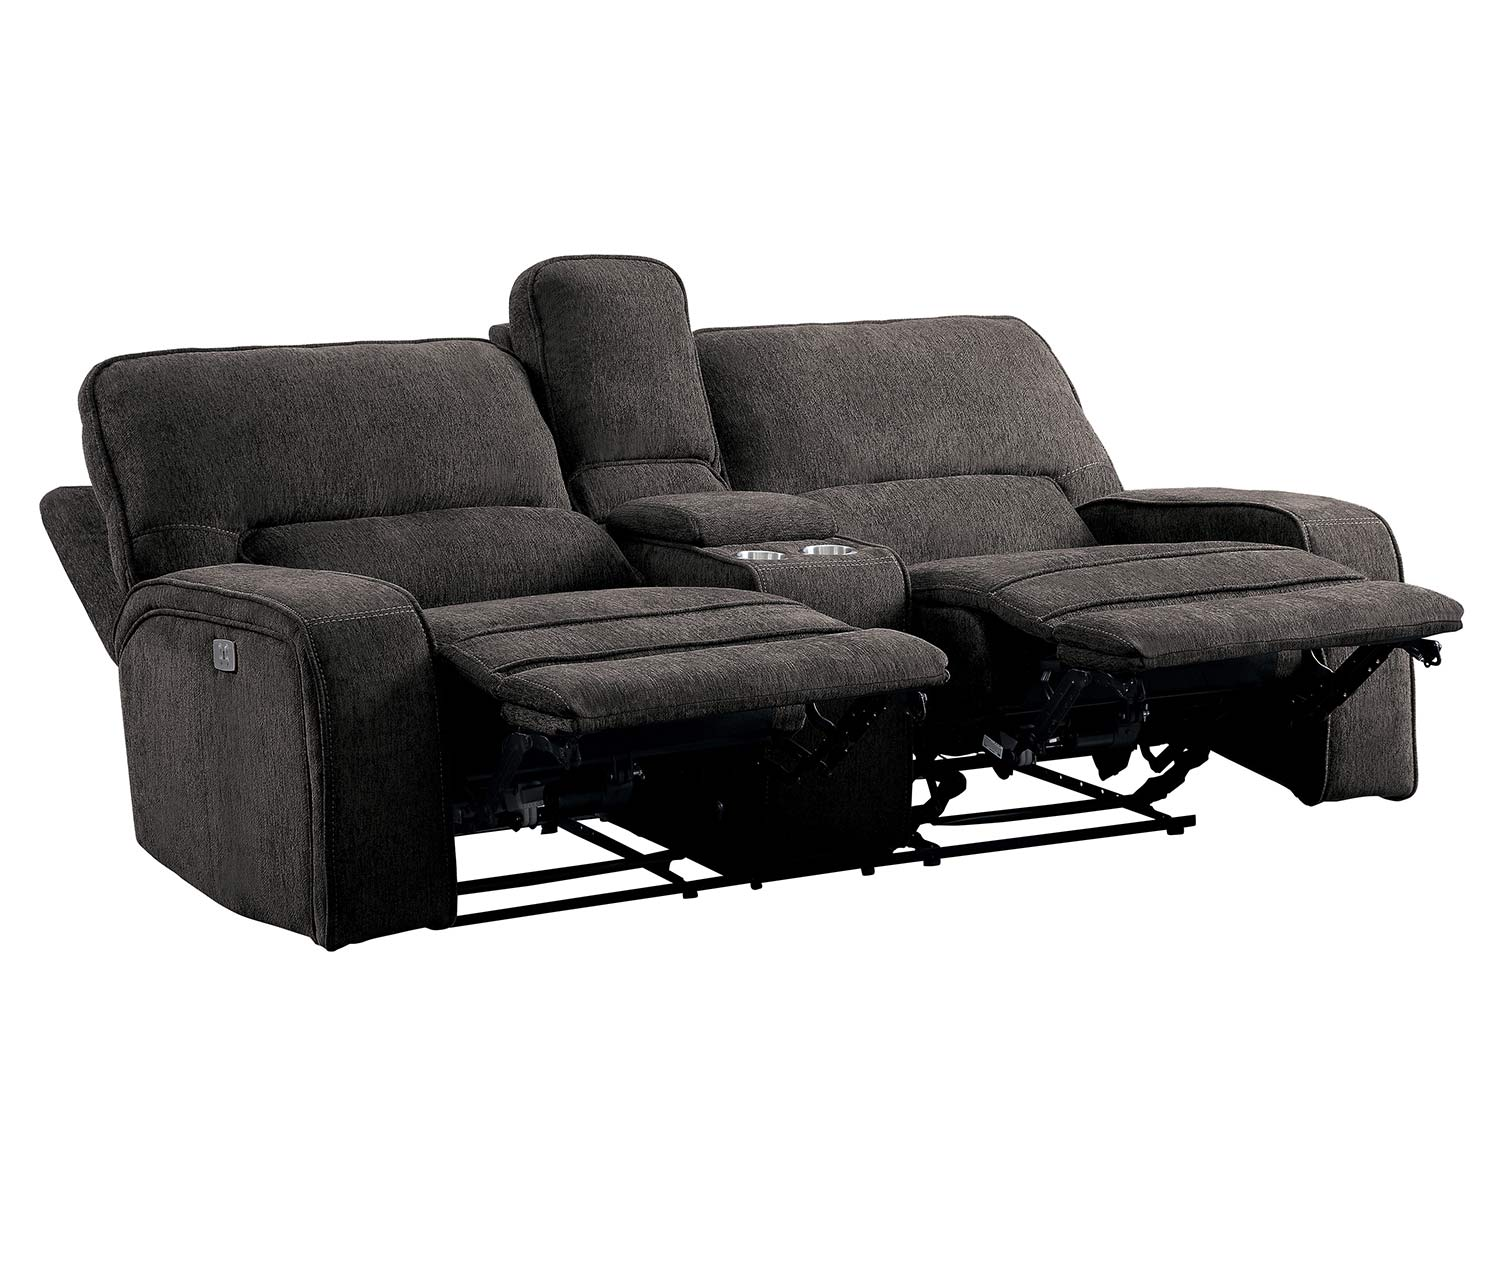 Homelegance Borneo Power Double Reclining Love Seat with Center Console and Power Headrests - Chocolate